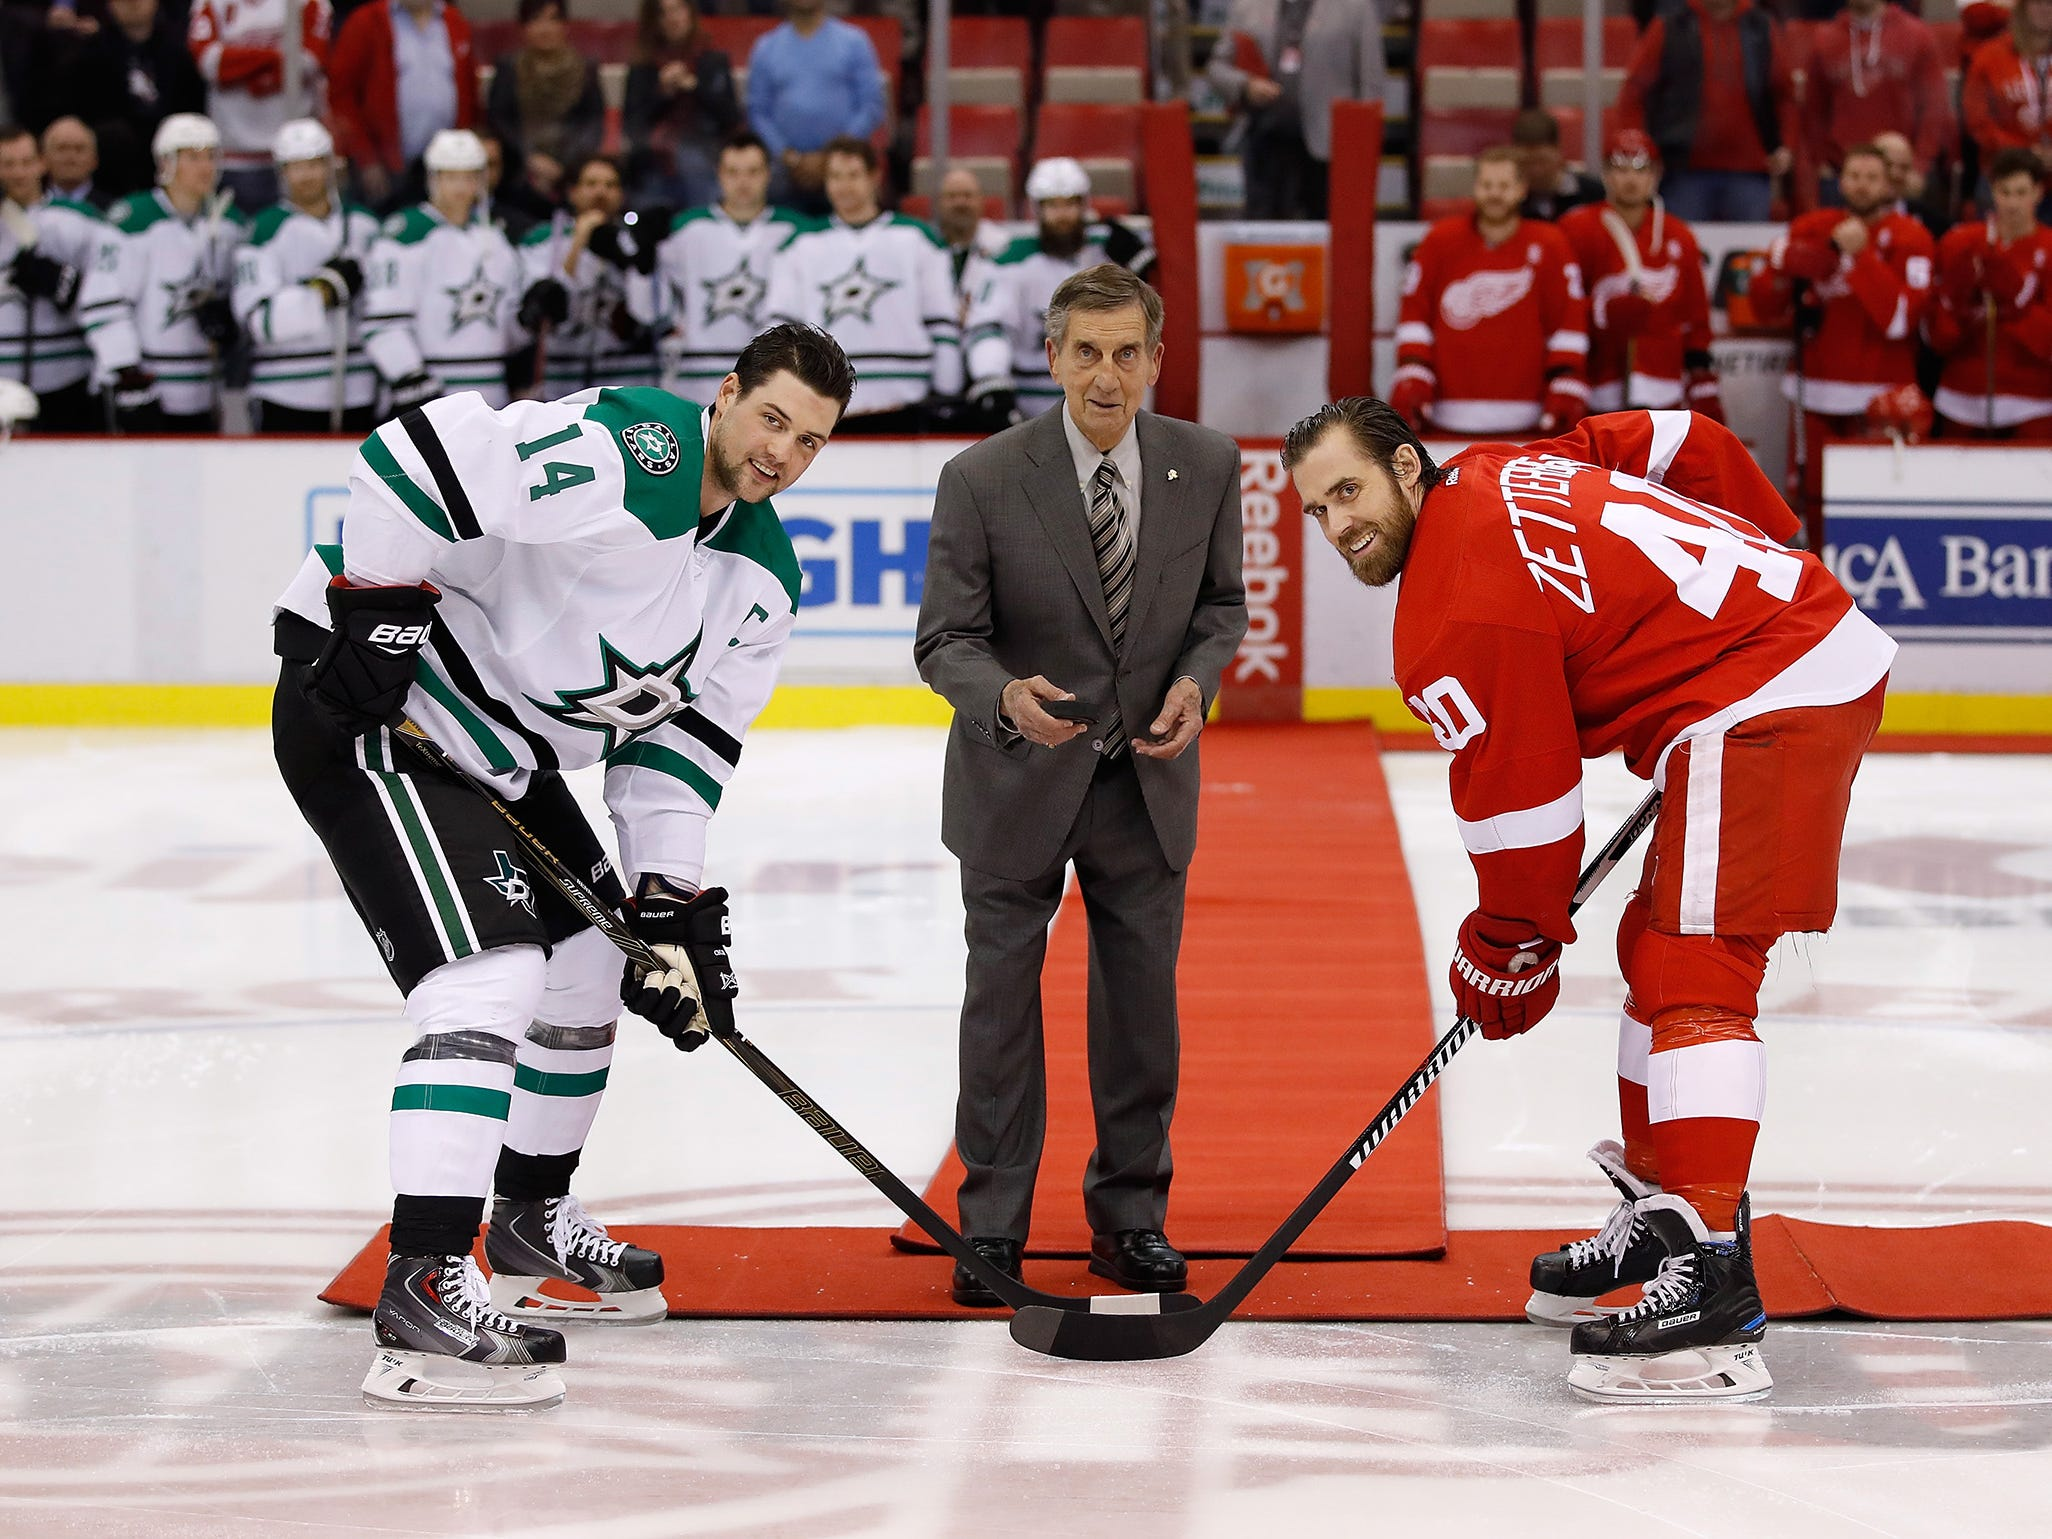 Red Wing Hall of Famer Ted Lindsay does a ceremonial puck drop between Jamie Benn of the Dallas Stars and Henrik Zetterberg of the Red Wings at Joe Louis Arena on November 29, 2016 in Detroit.